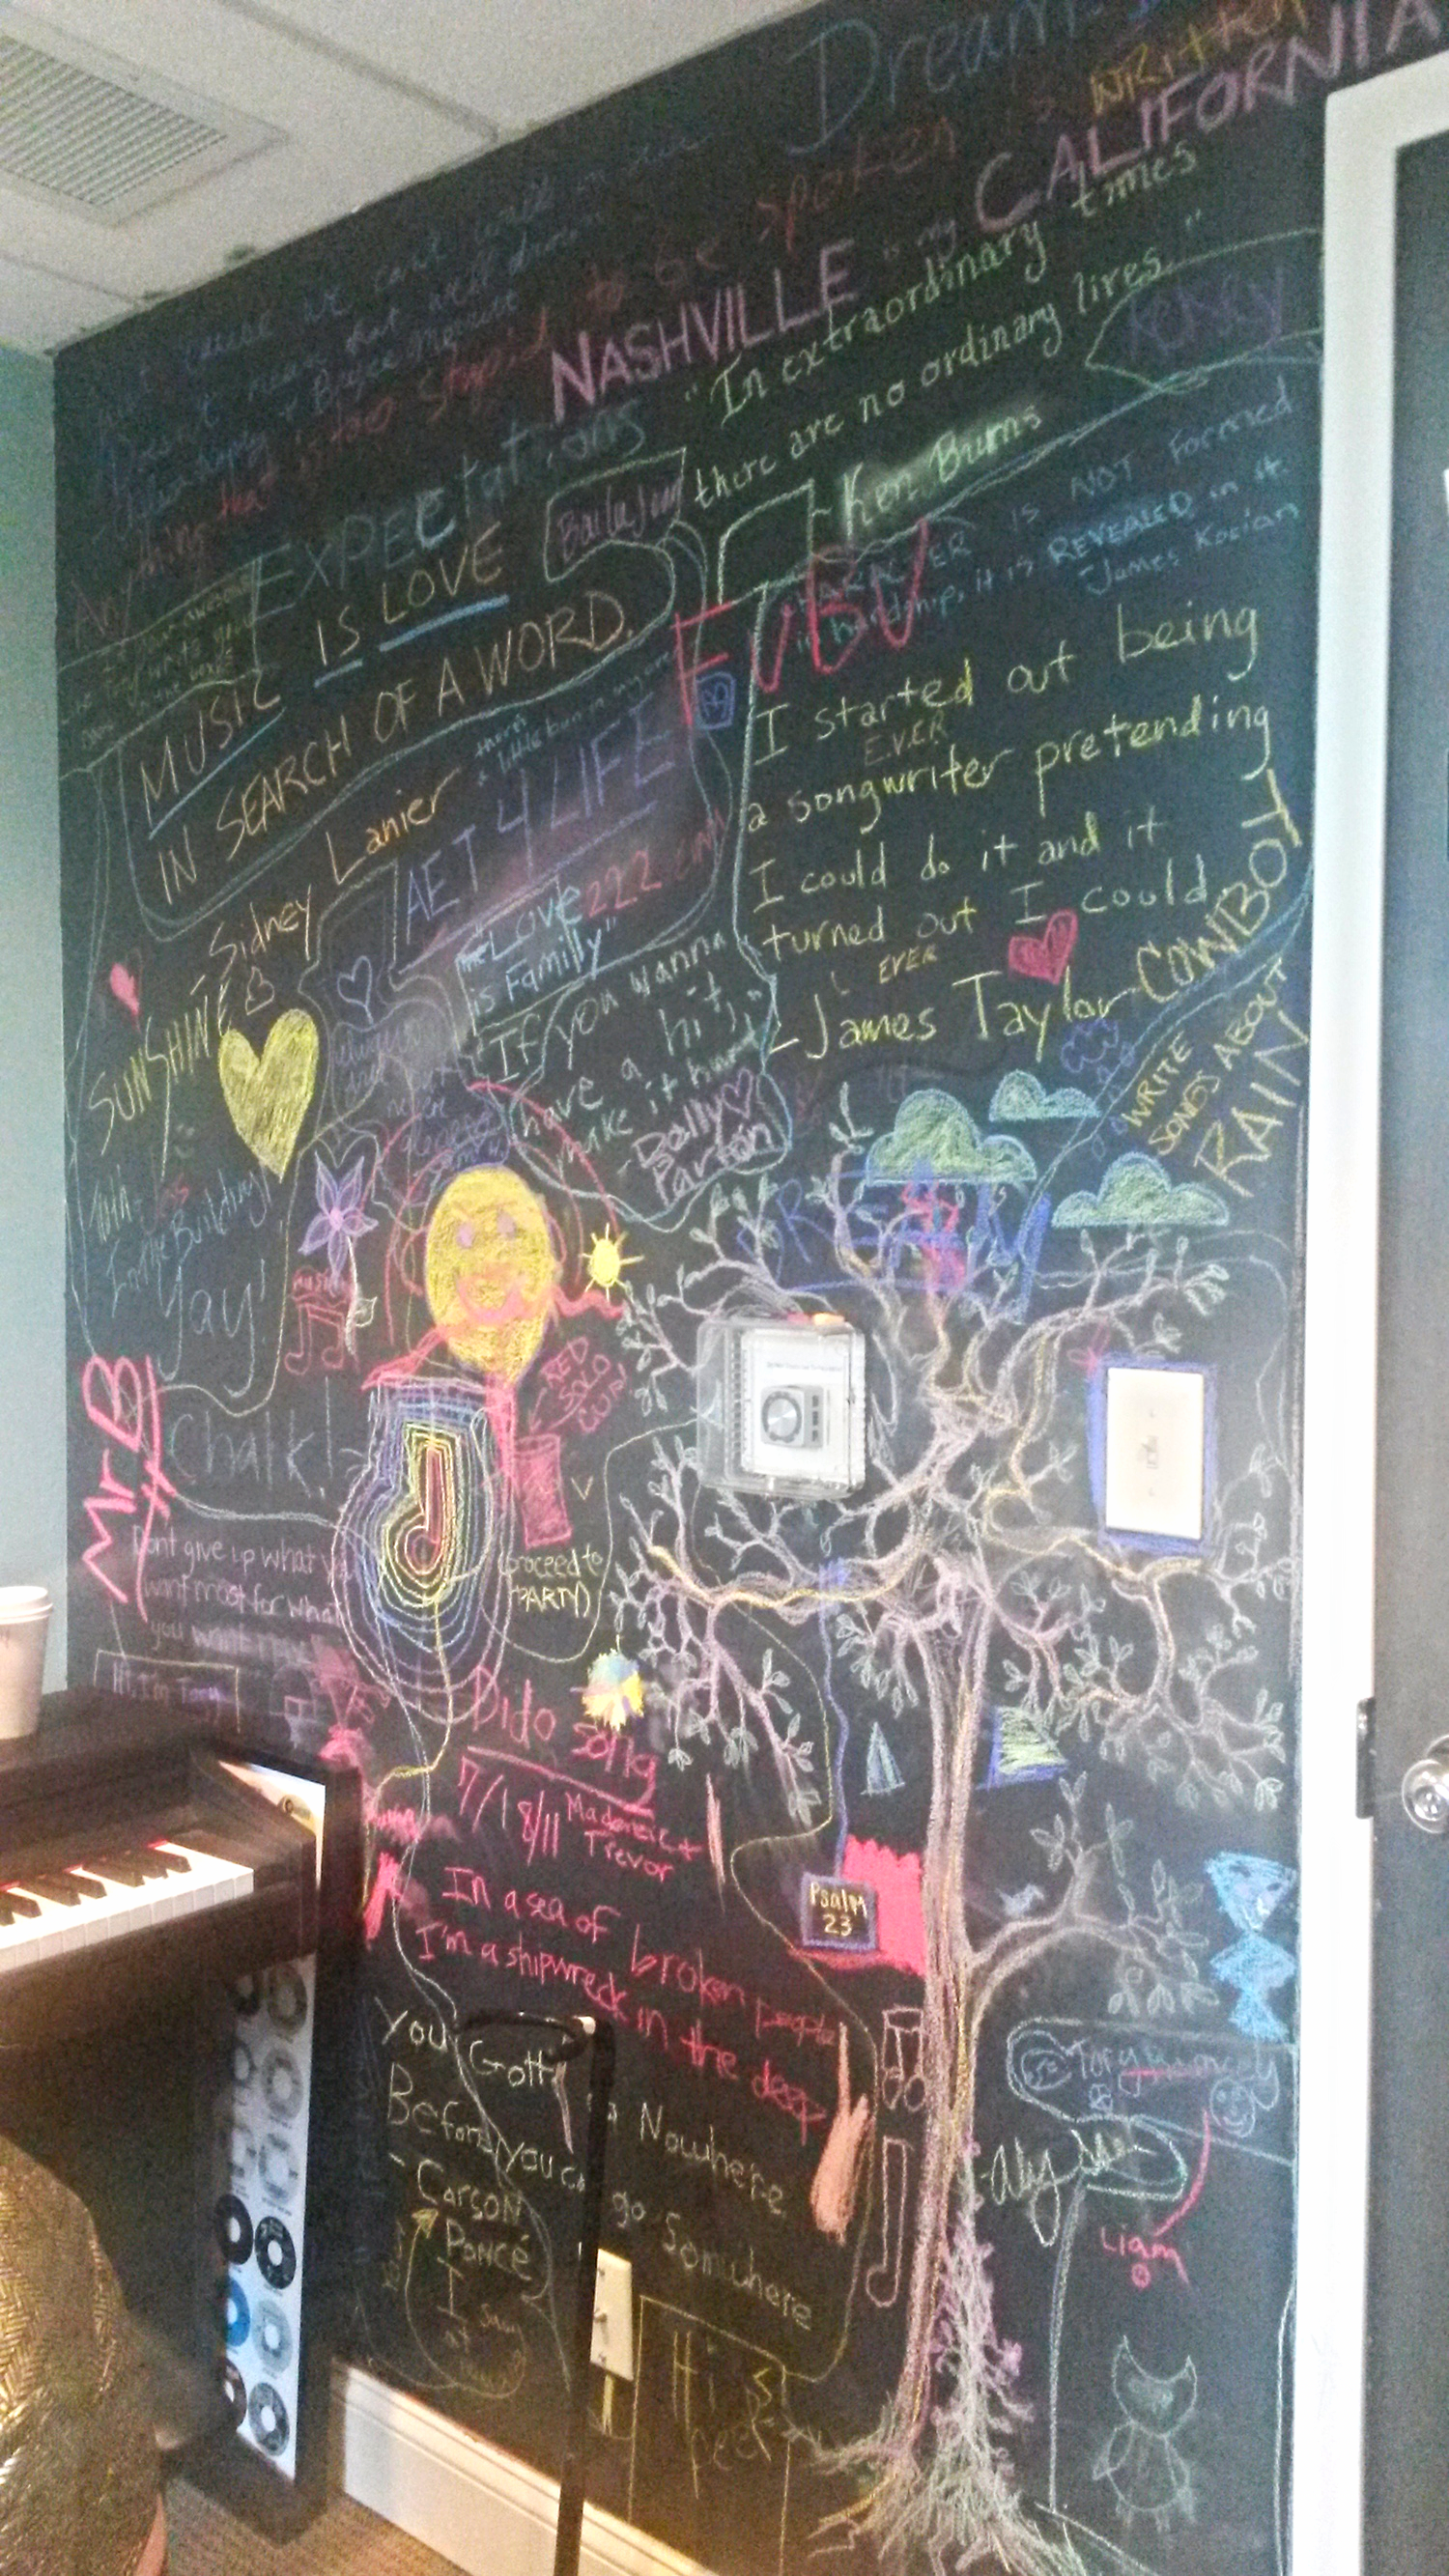 A blackboard wall in our studio in Belmont. There is a great Dolly Parton quote written on it that reads: 'If you want to write a hit make it hurt.' Wise words!